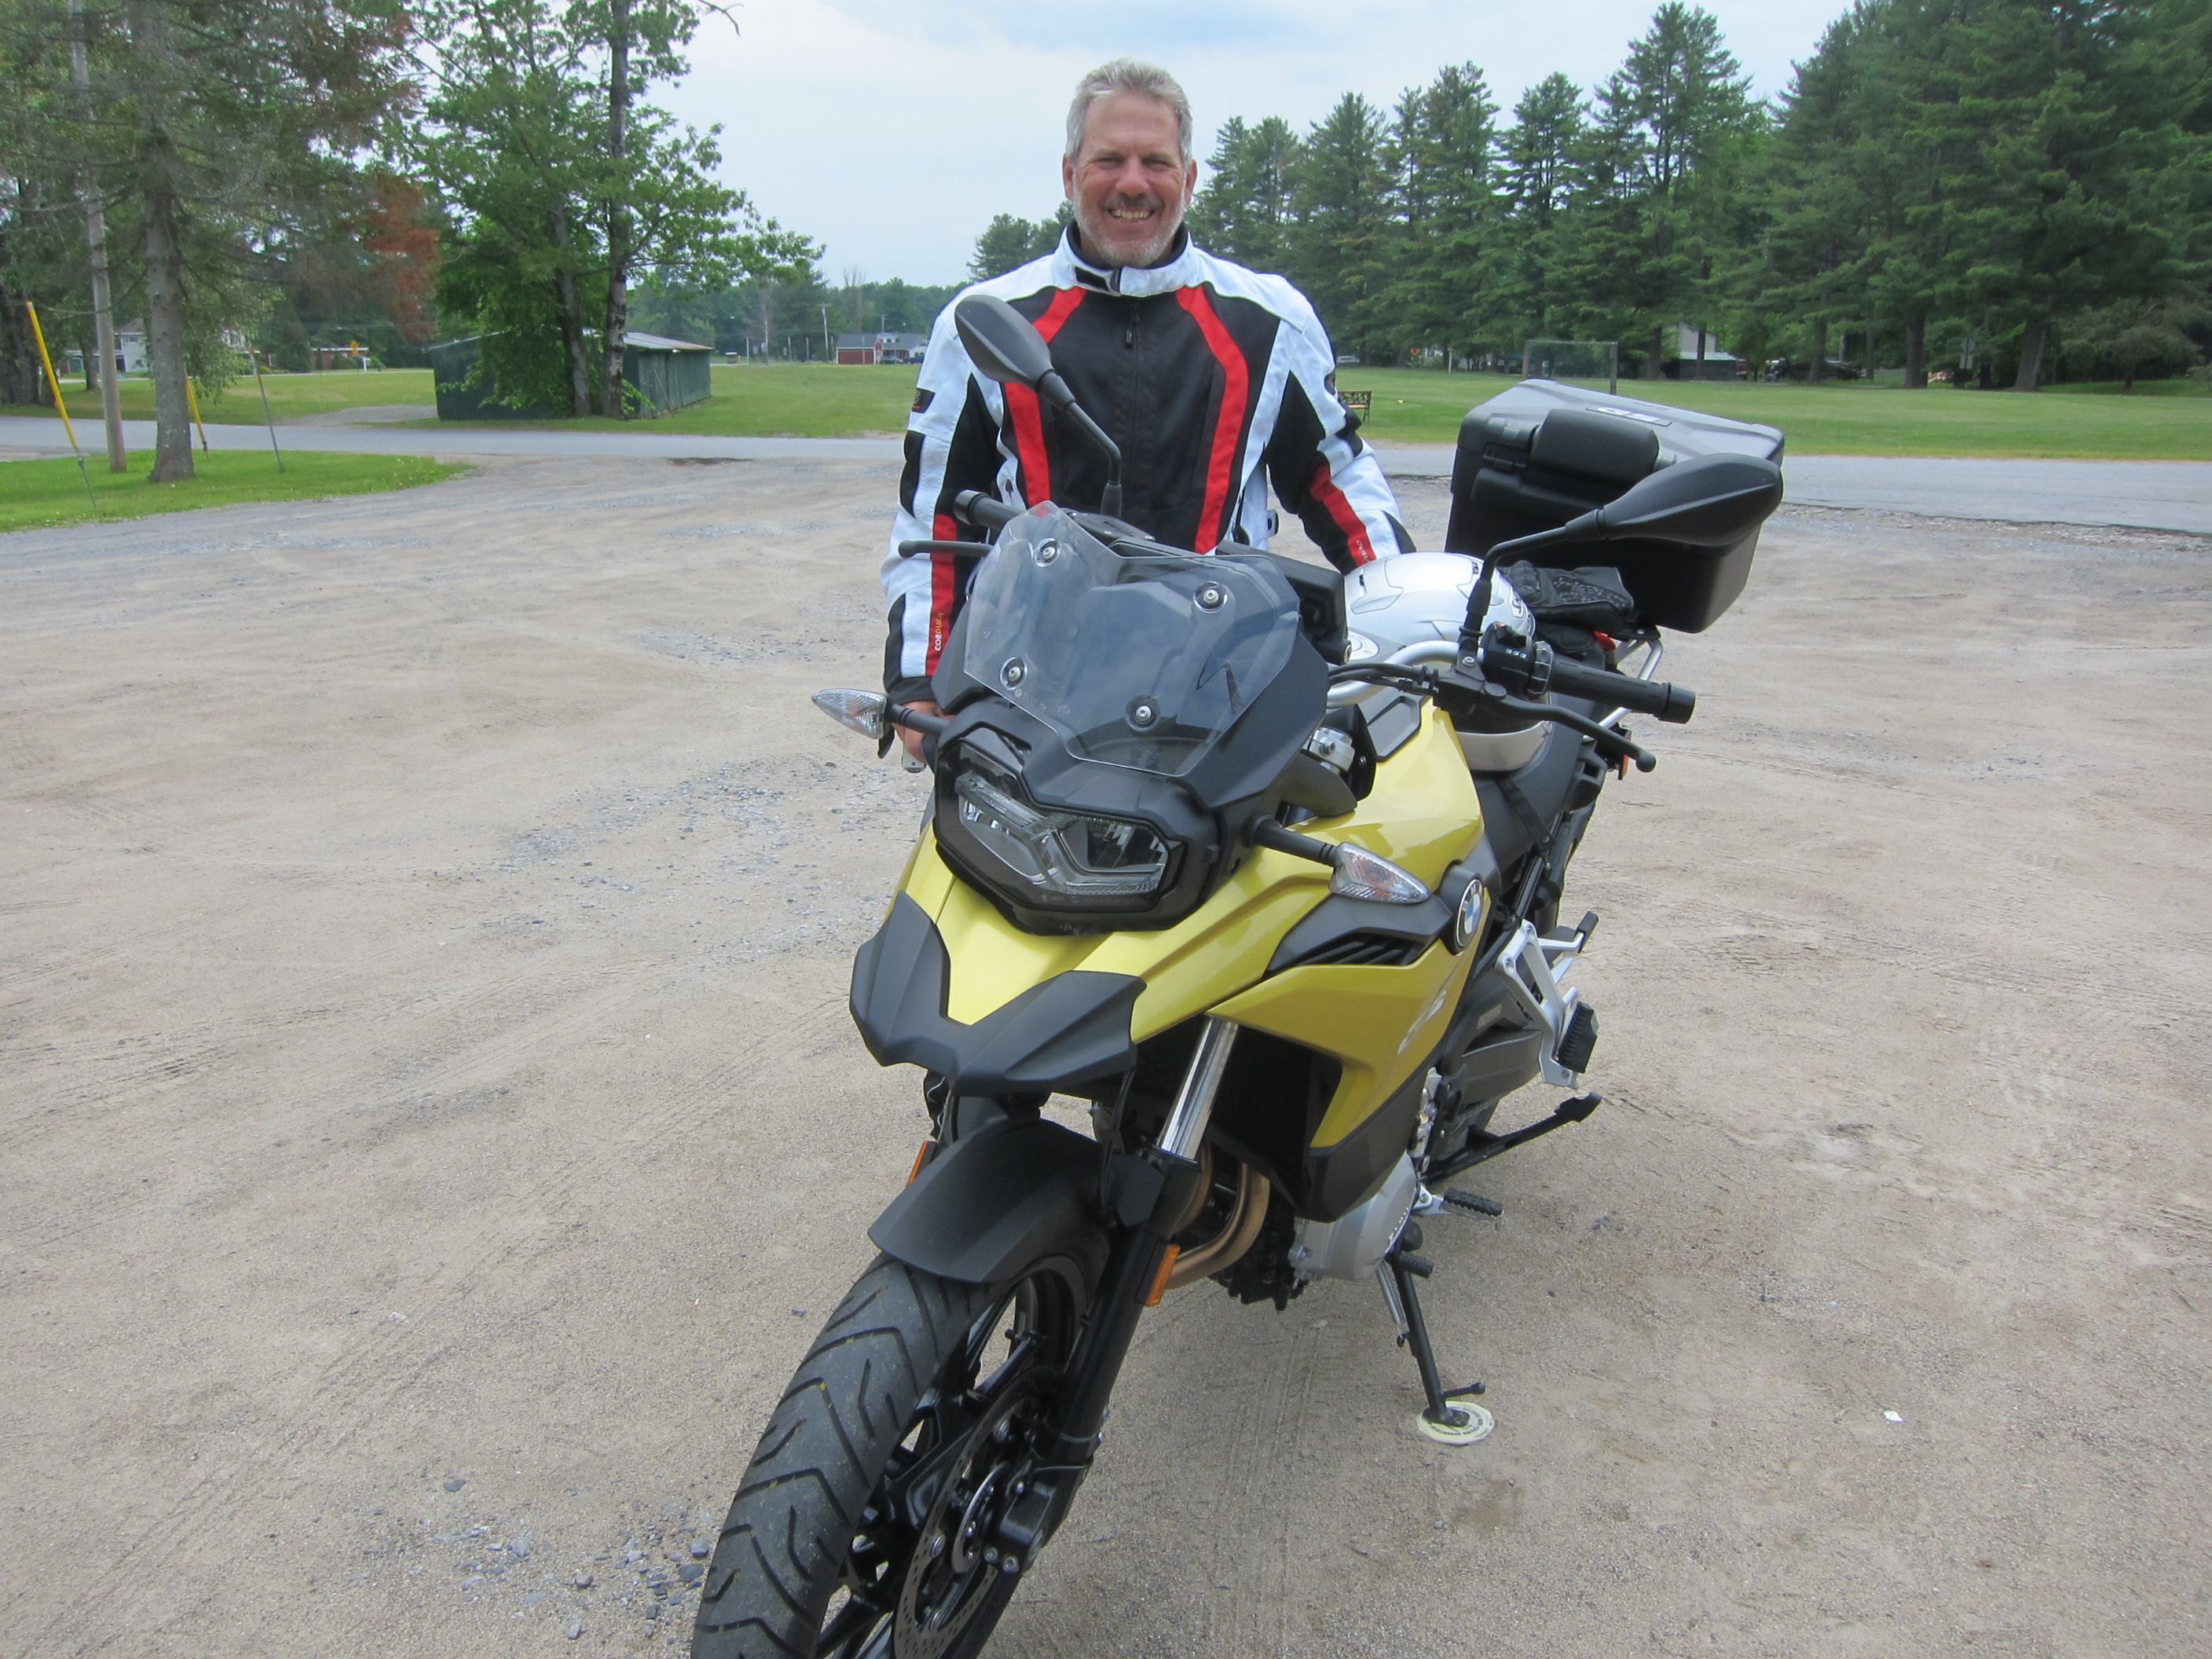 Motorcycle review – BMW F750GS – Big Apple Motorcycle School